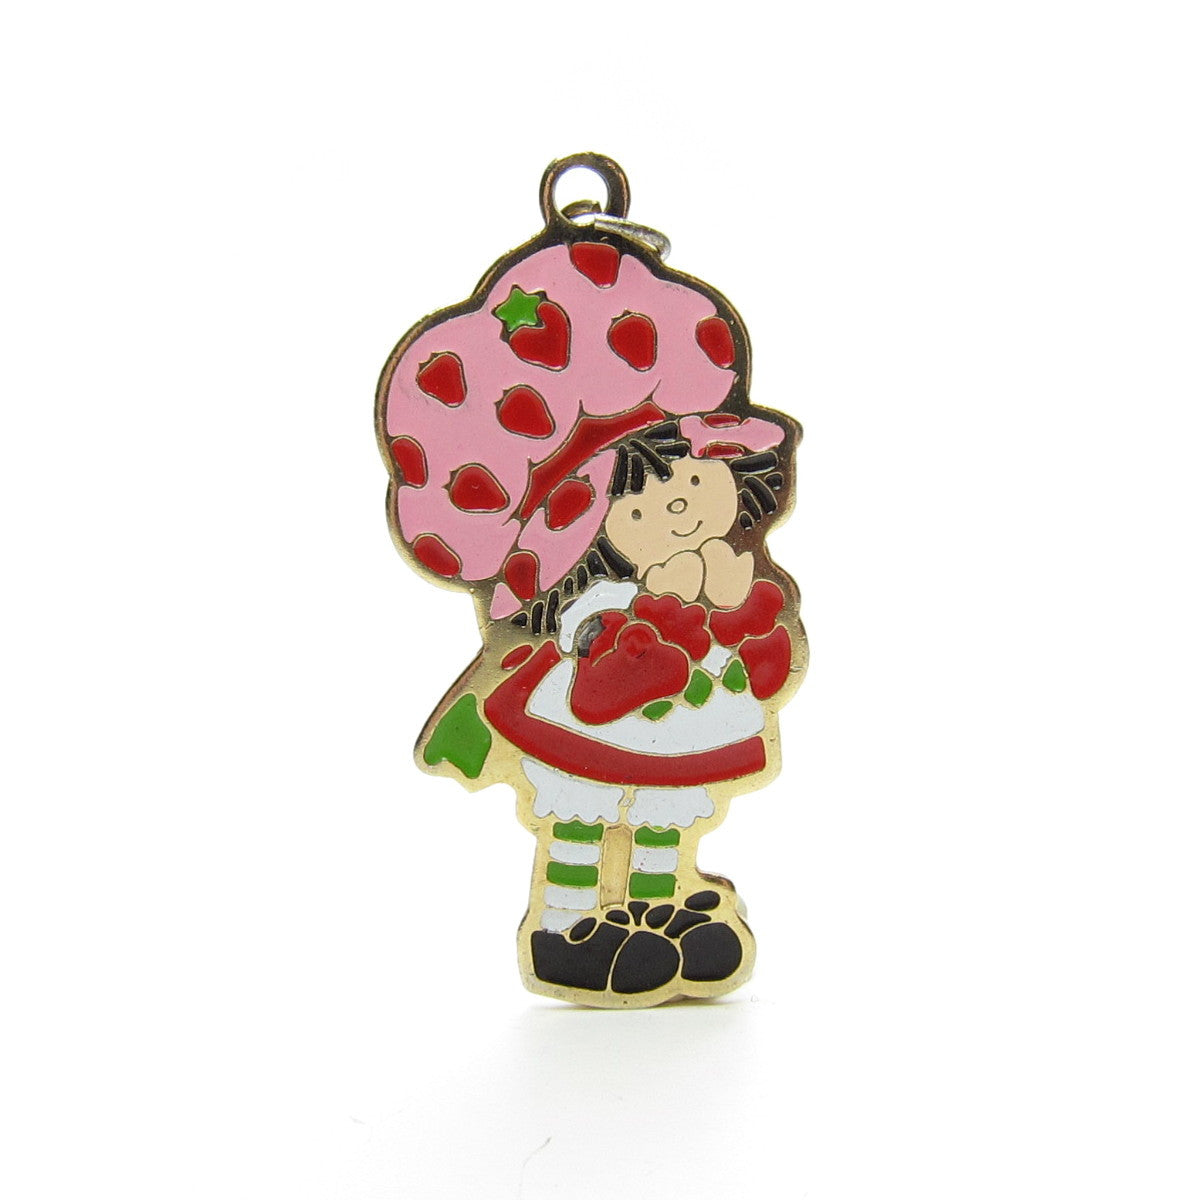 Strawberry Shortcake charm pendant